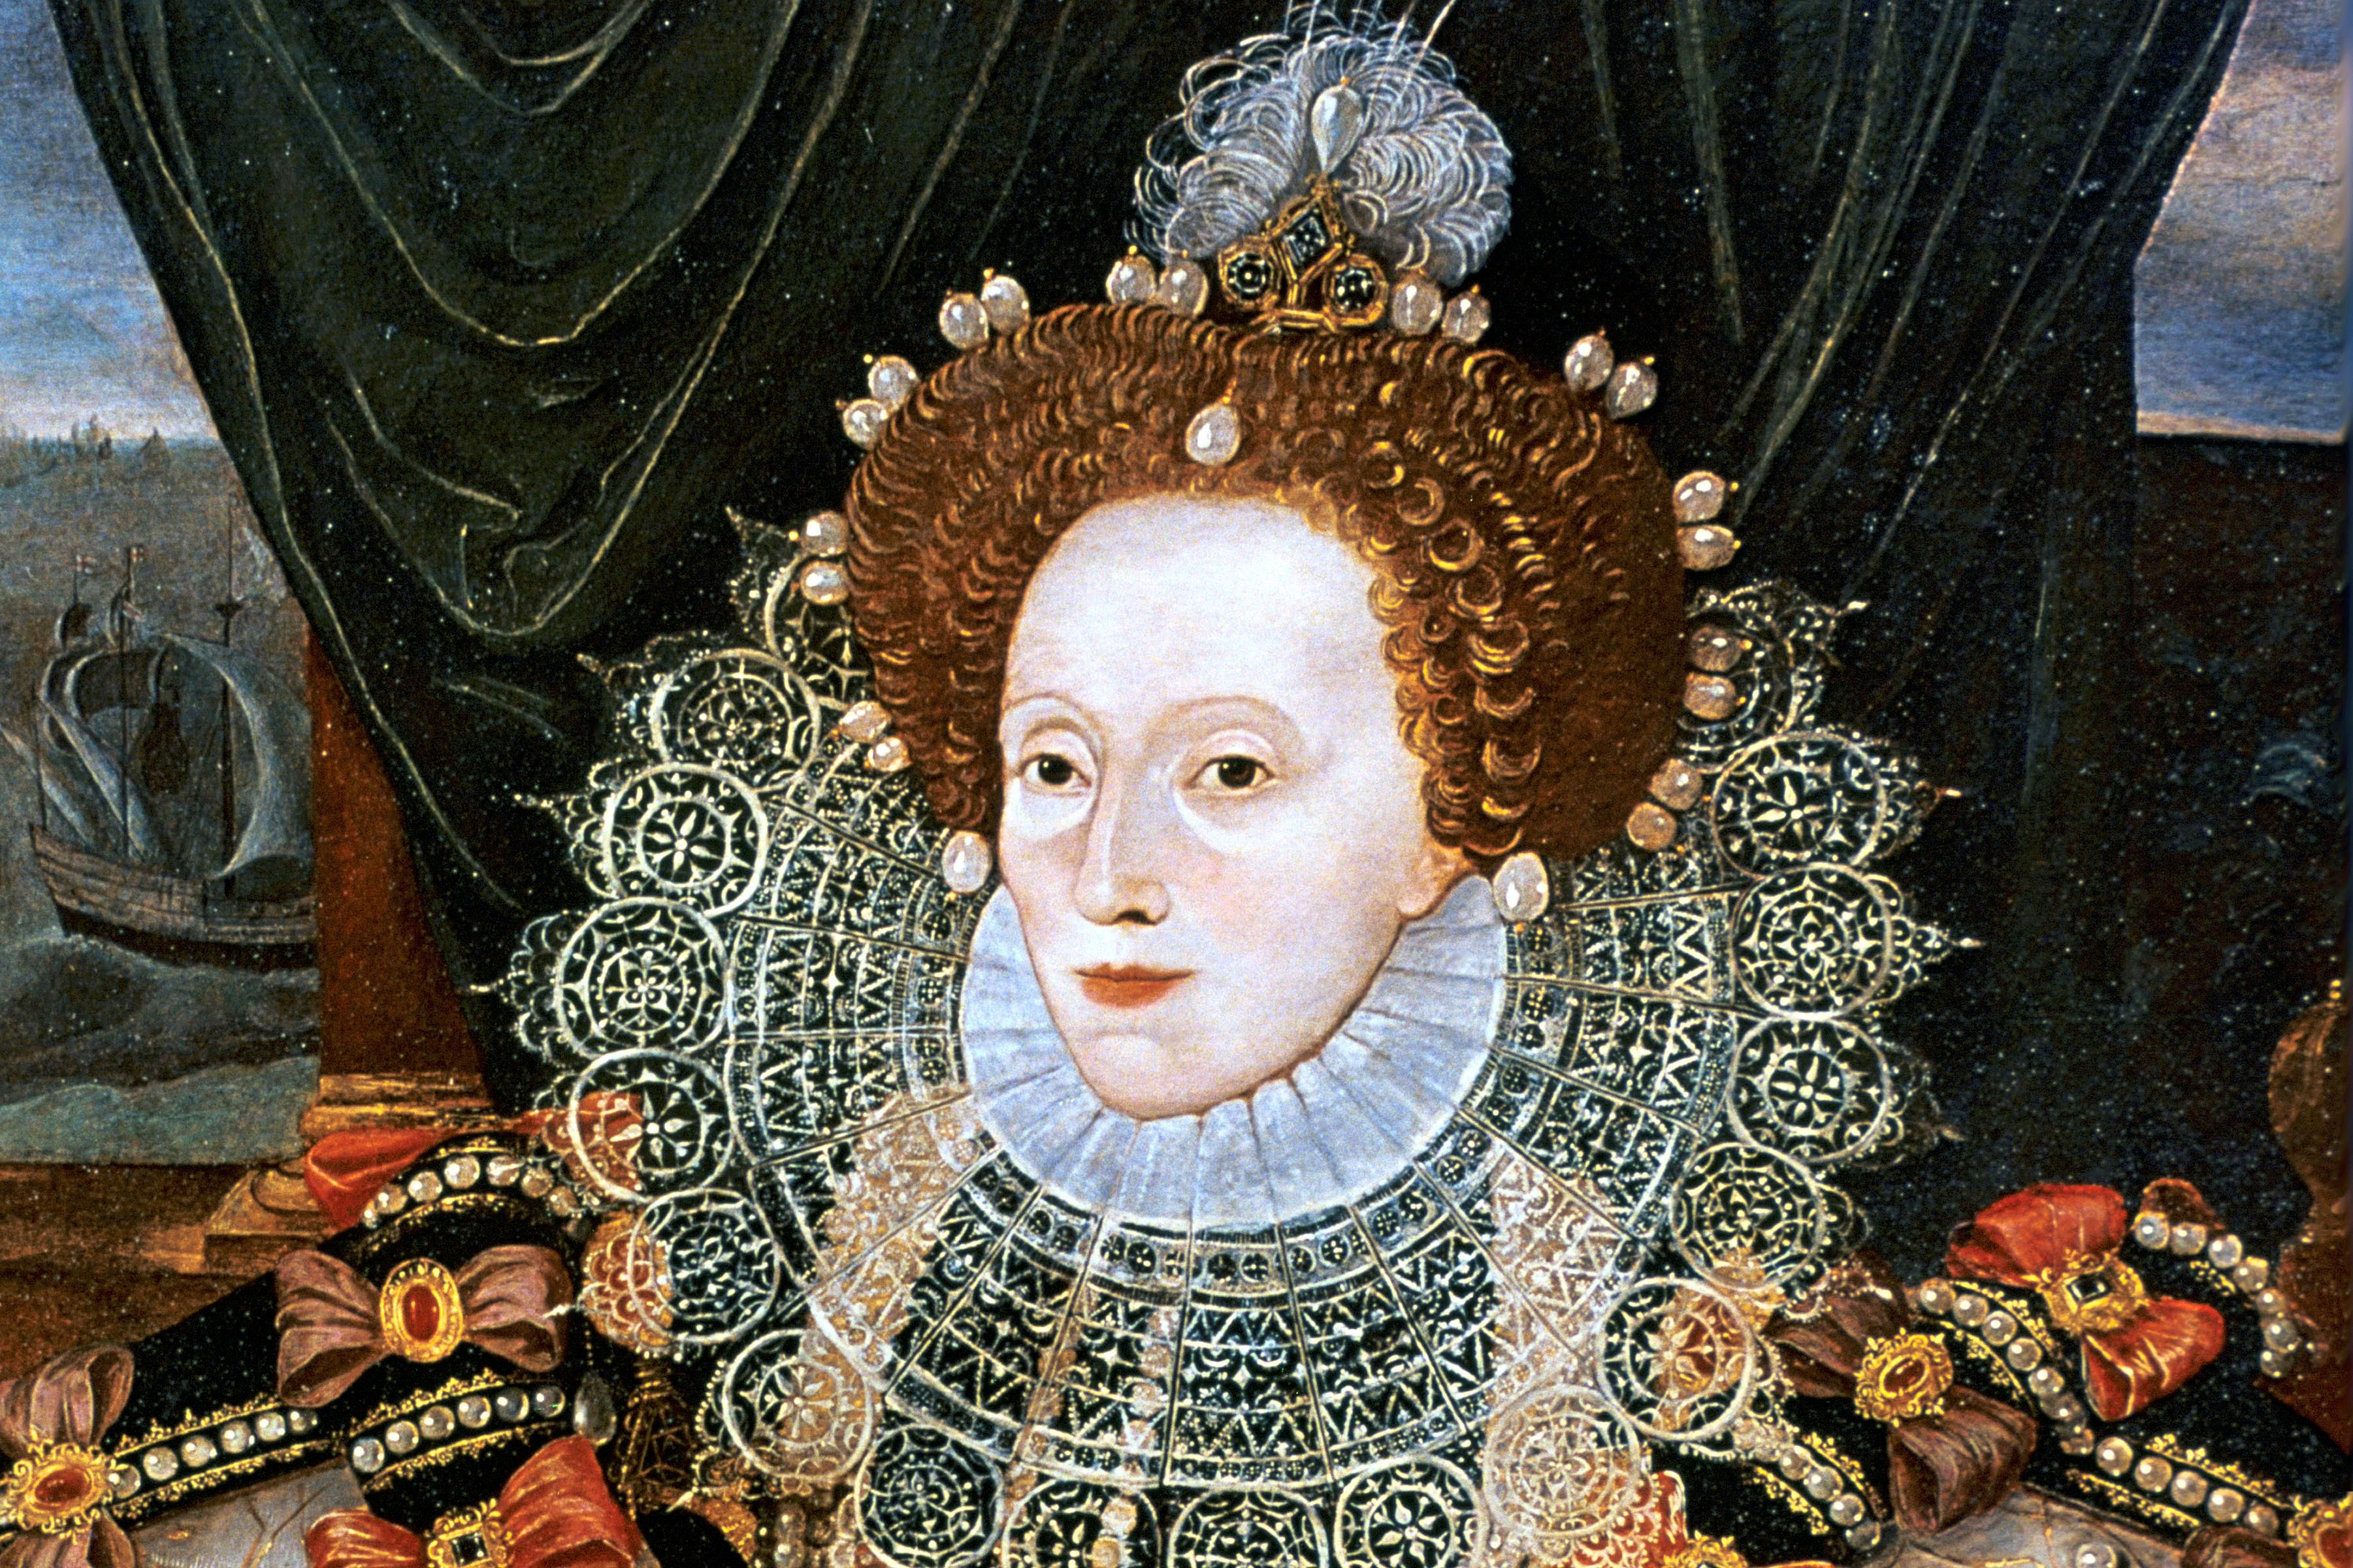 Dating and marriage in the elizabethan era - Data Science at